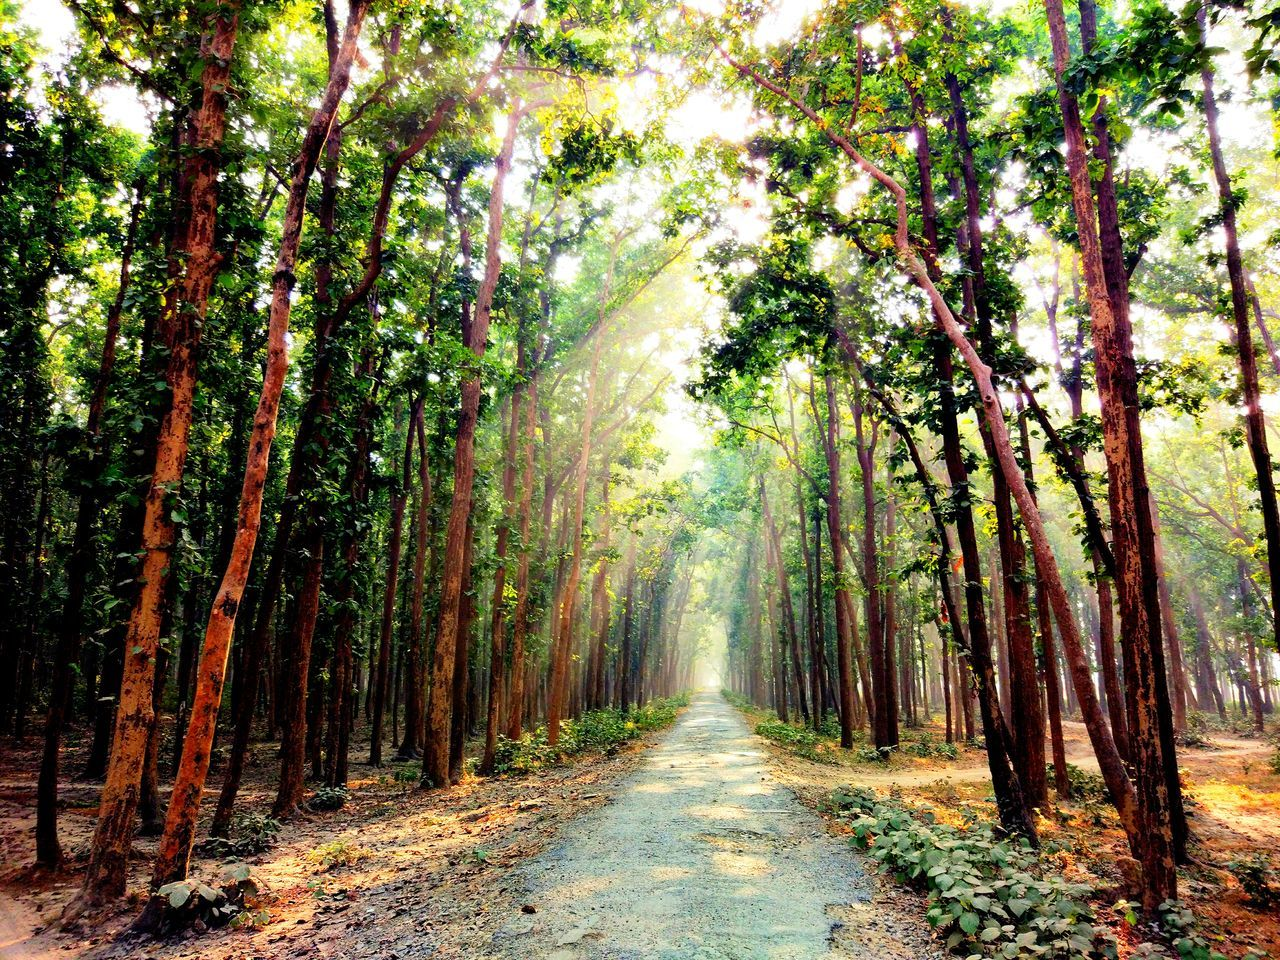 My Year My View Tree Nature Beauty In Nature Forest Outdoors Day No People The Way Forward Sunlight Brokenroad Green